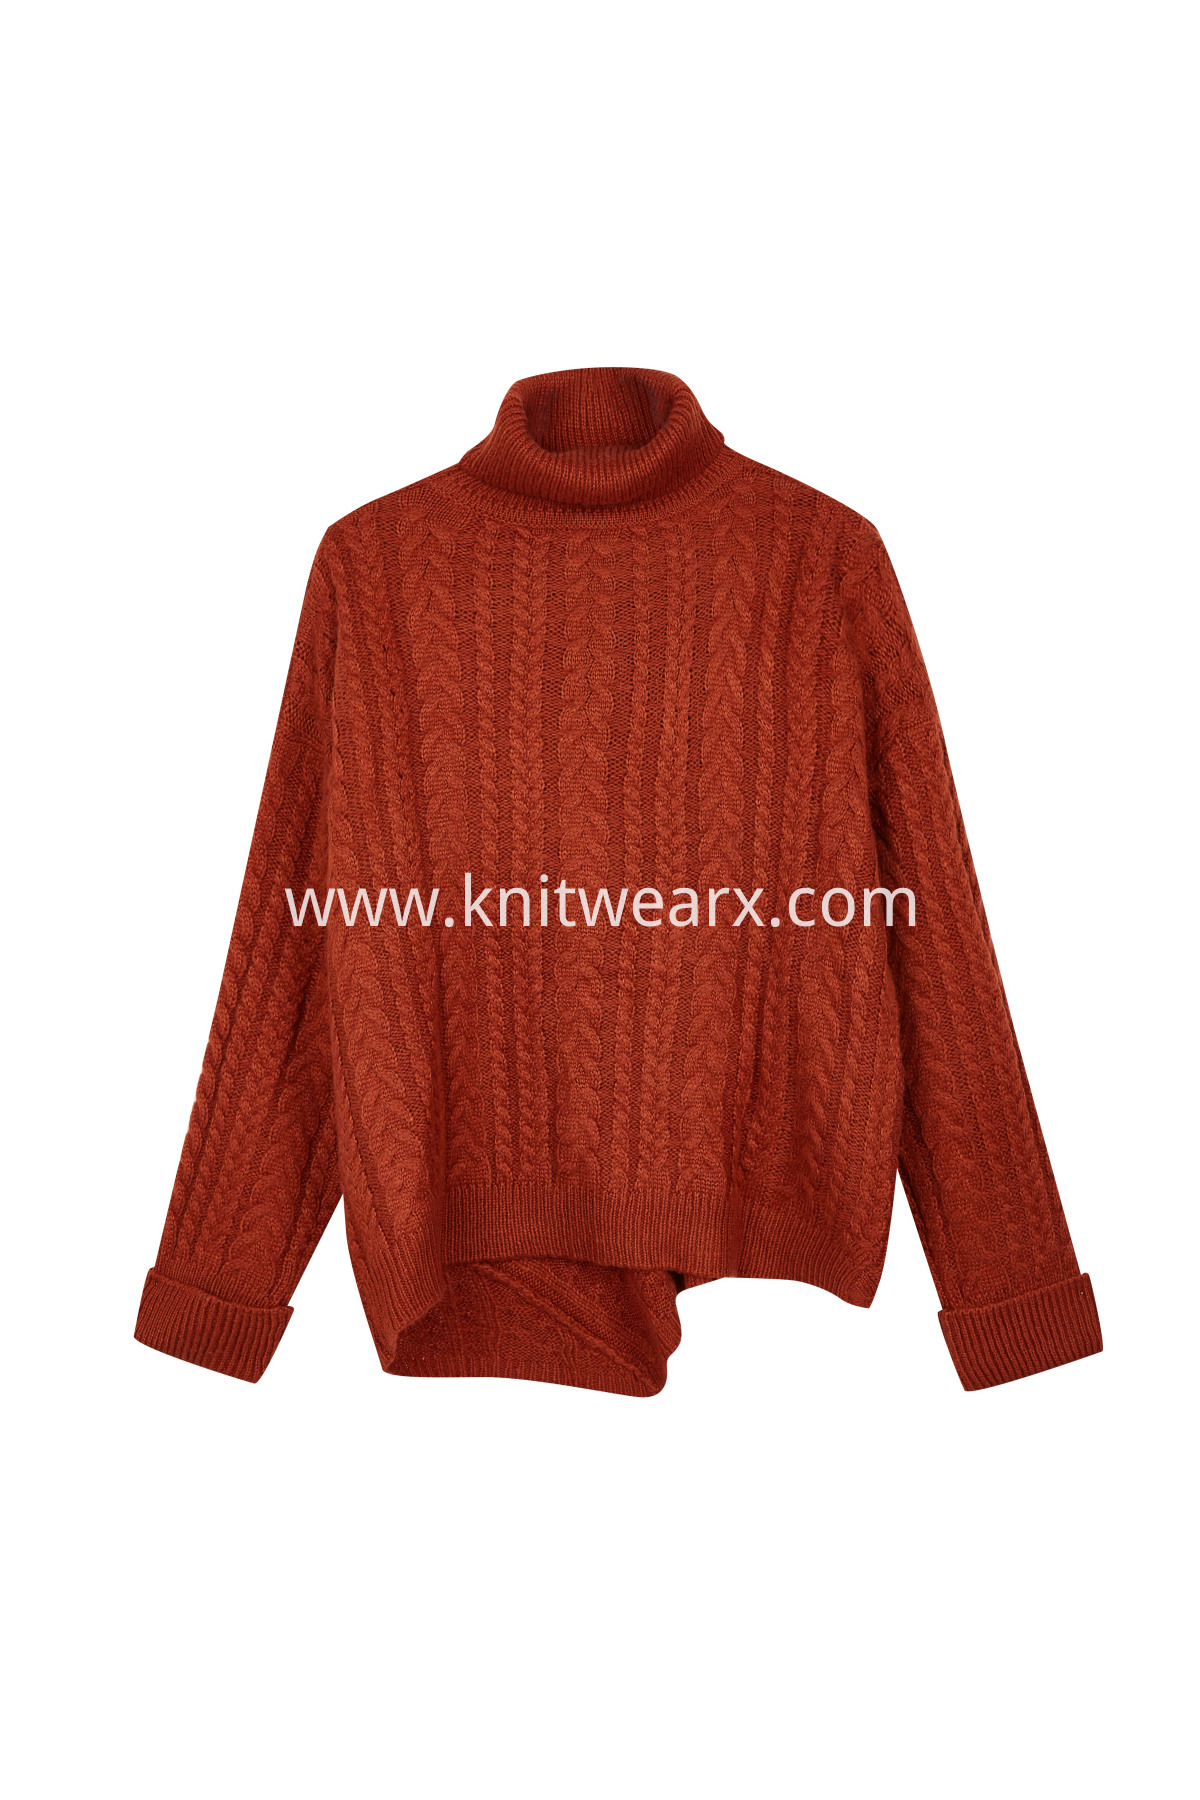 Women's Casual Turtleneck Loose Chunky Cable Knit Pullover Sweater Outerwear